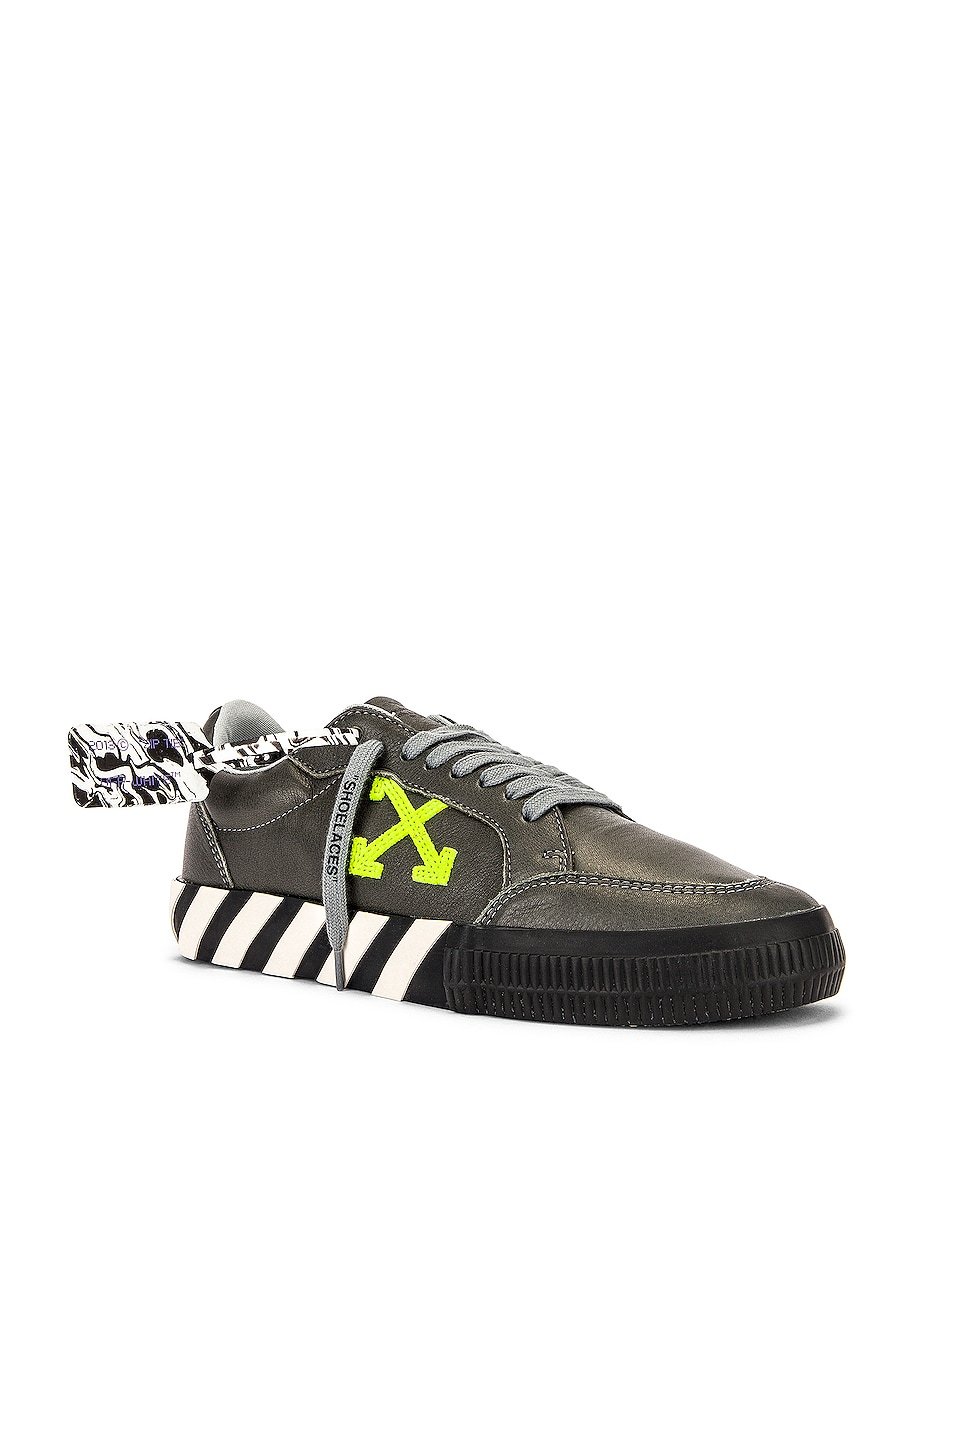 Image 1 of OFF-WHITE Low Vulcanized Sustainable Sneaker in Leather Grey & Green